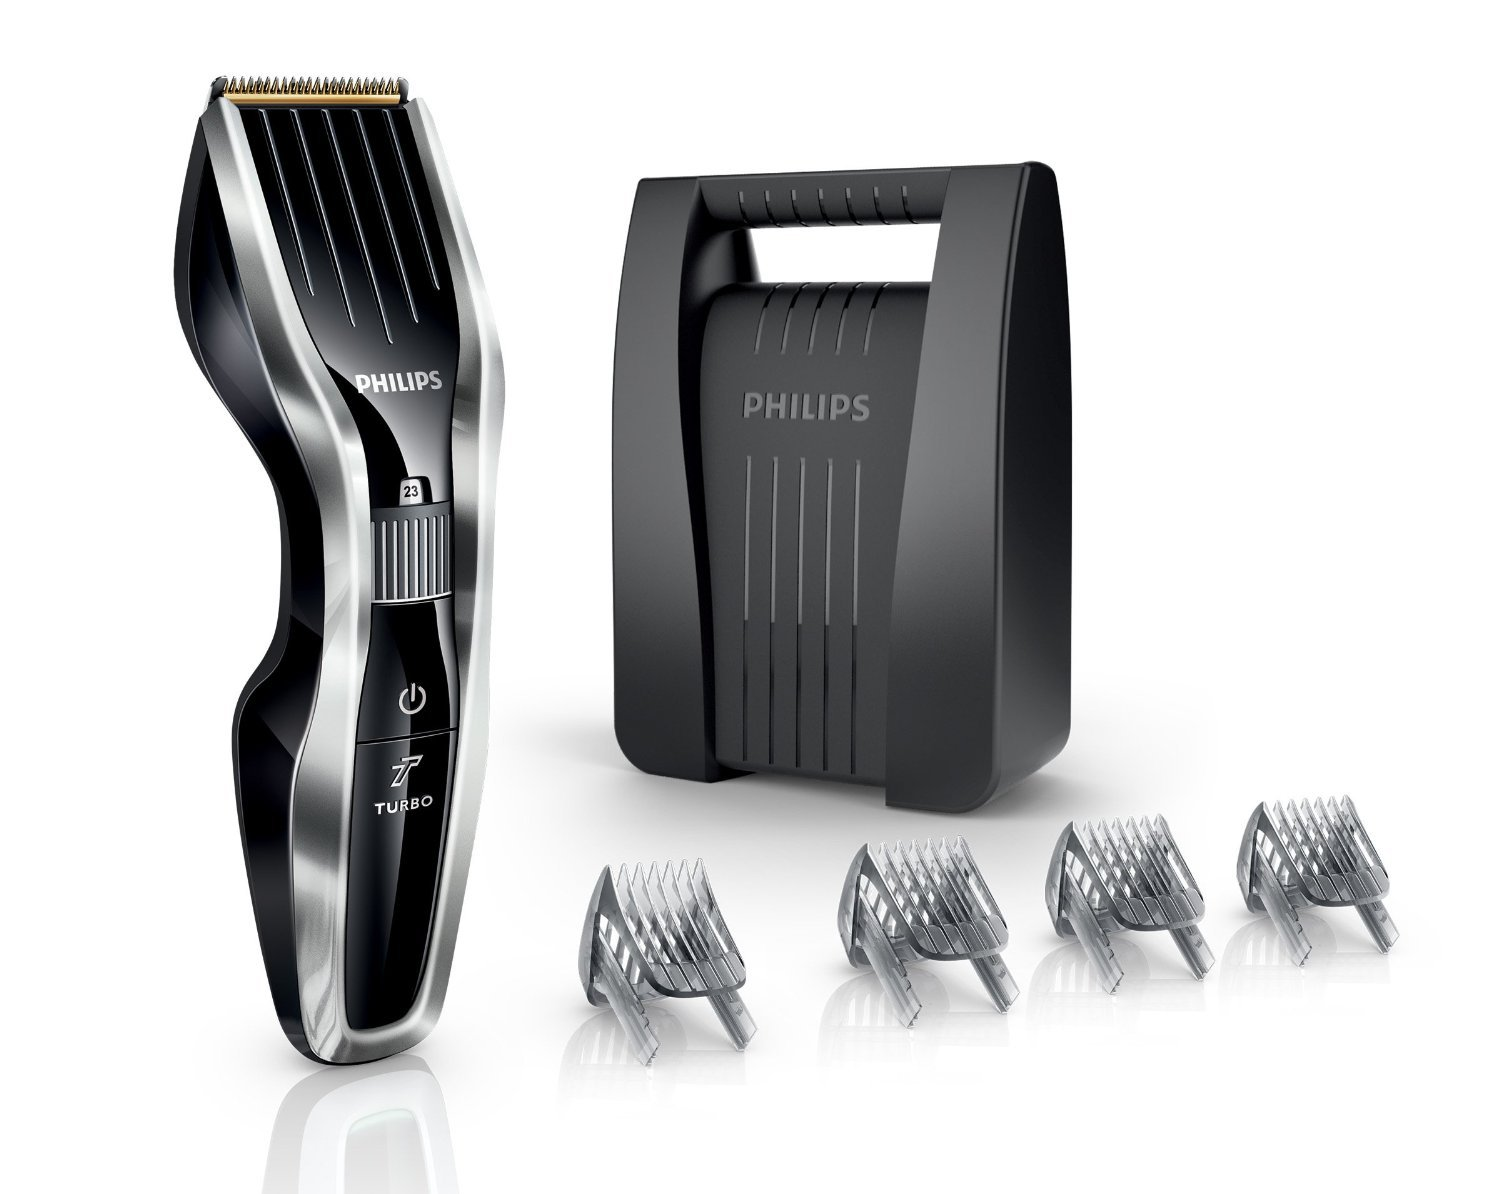 philips hairclipper hc5450 83 review beard trimmer reviews. Black Bedroom Furniture Sets. Home Design Ideas